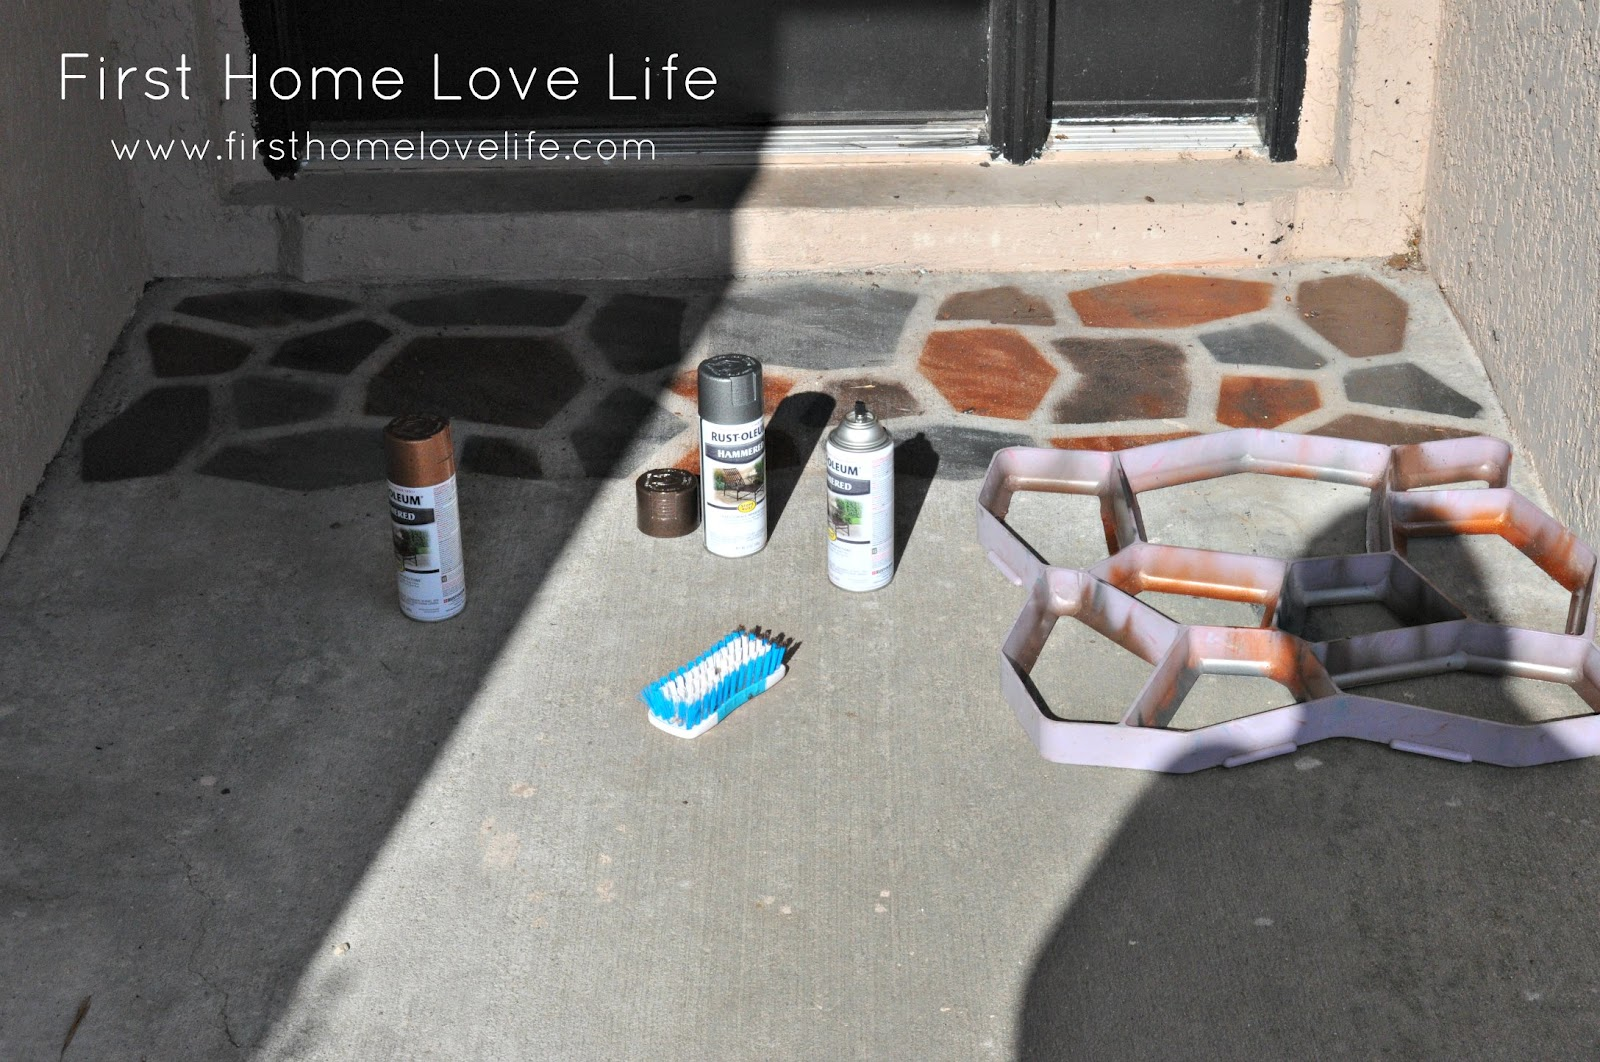 First Home Love Life